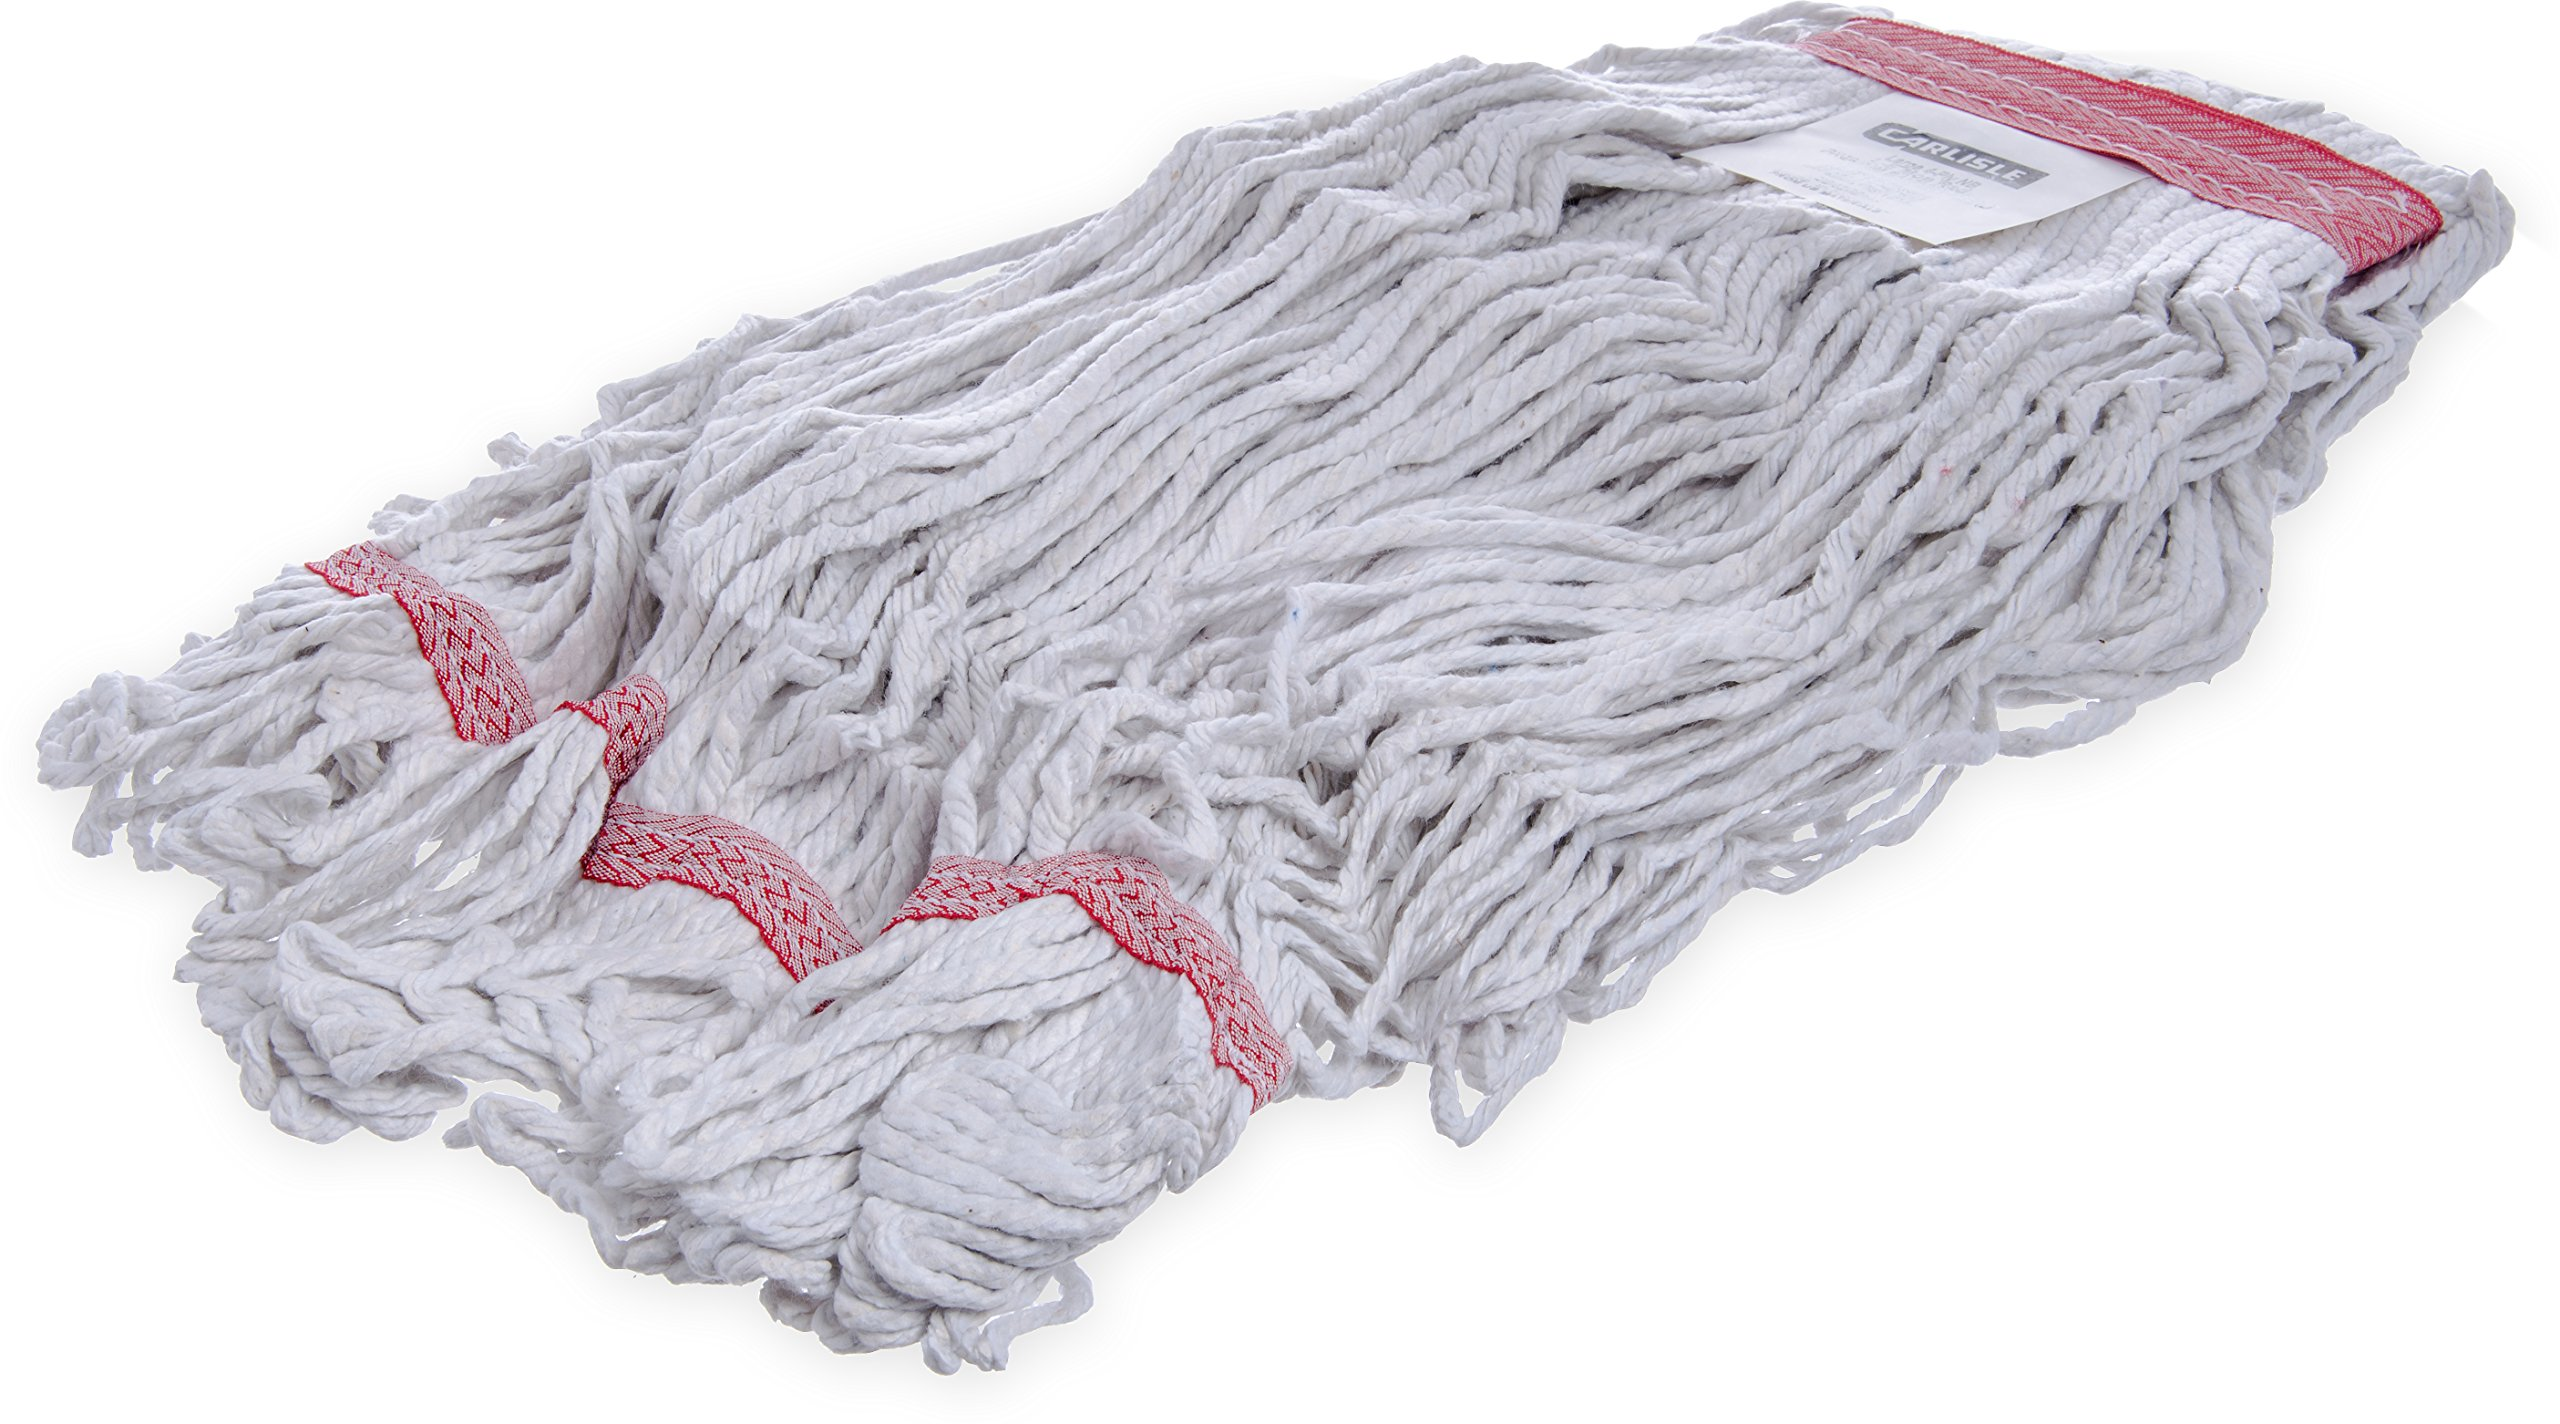 Carlisle 369425B00 Loop-Ended Narrow Band Mop Head Only, Large, Red (Pack of 12) by Carlisle